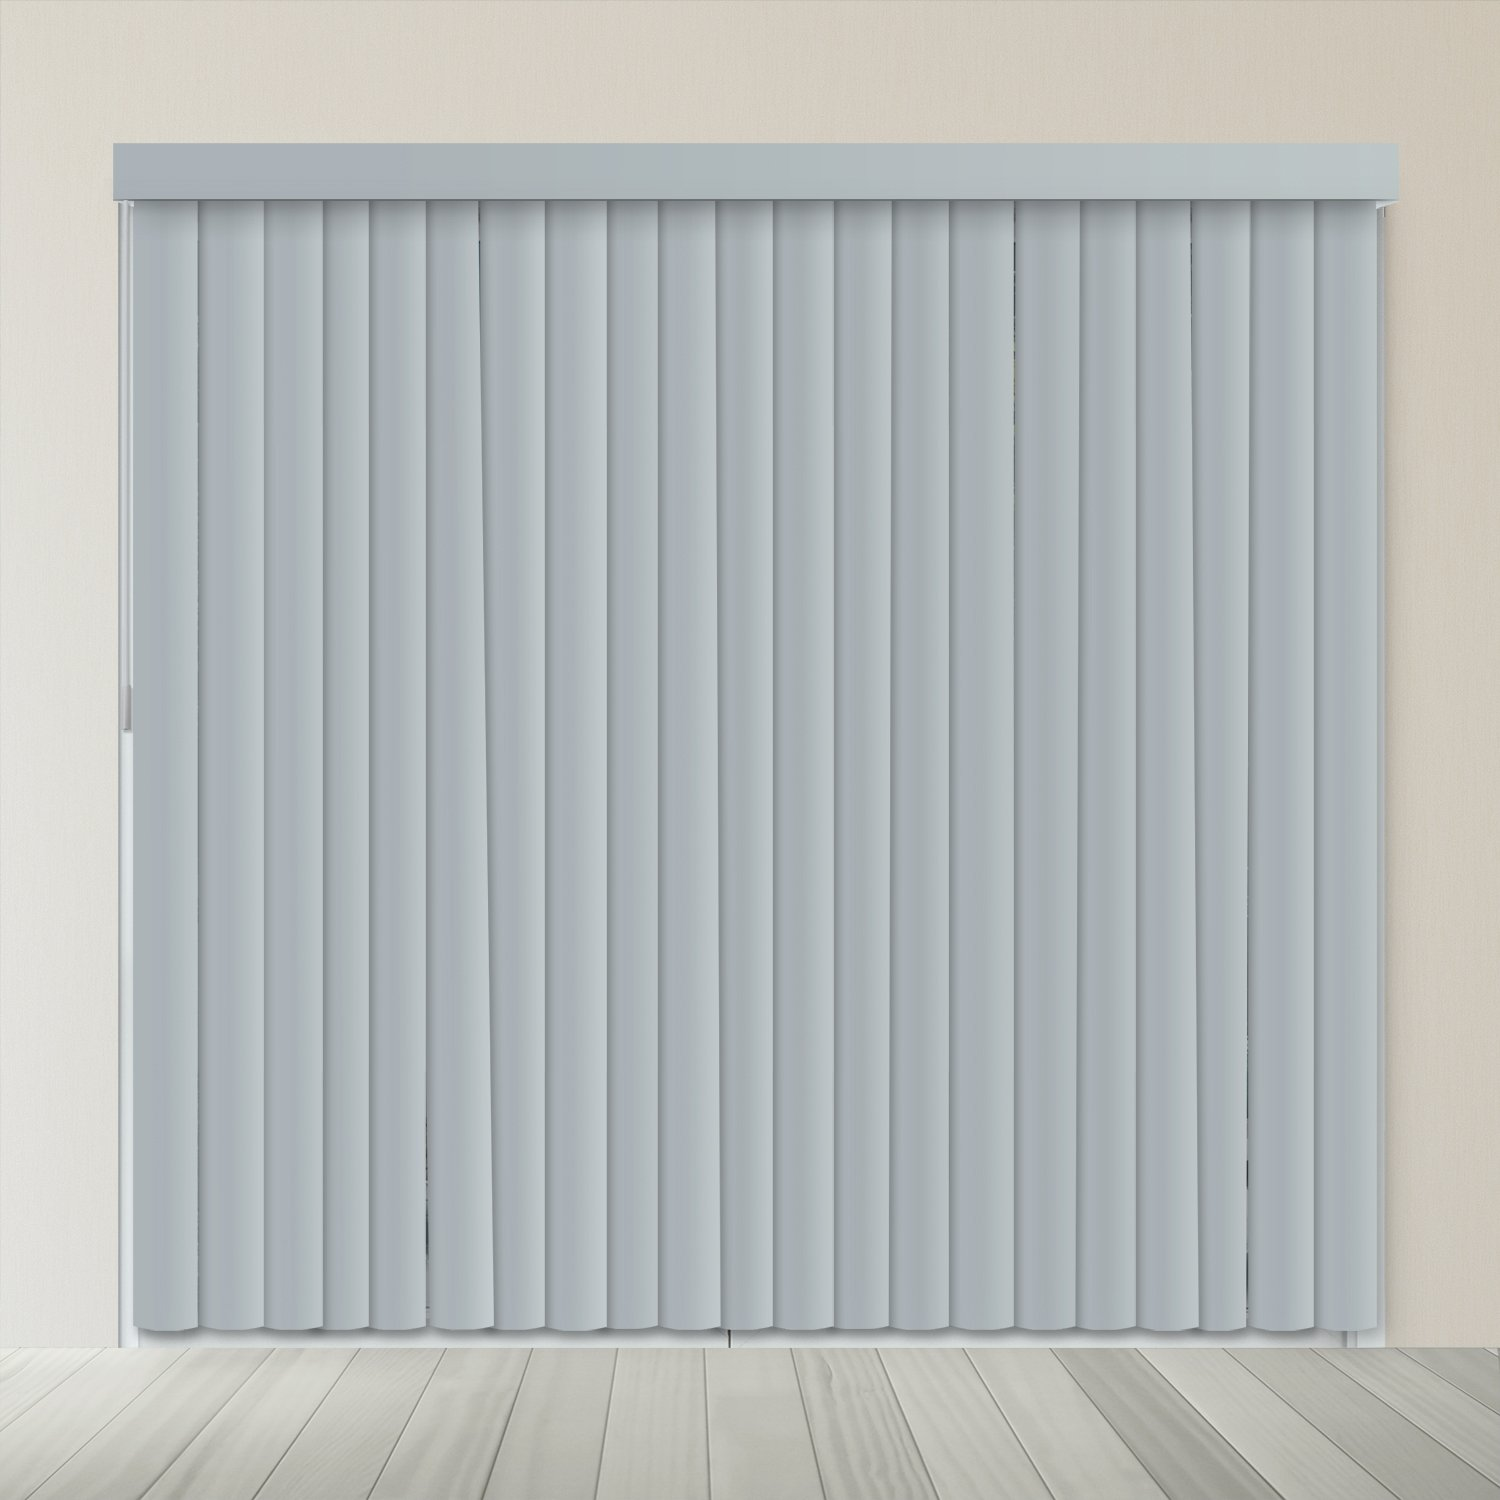 Chicology VBSG7884 Cordless Vertical Blind, Piano Slate Gray